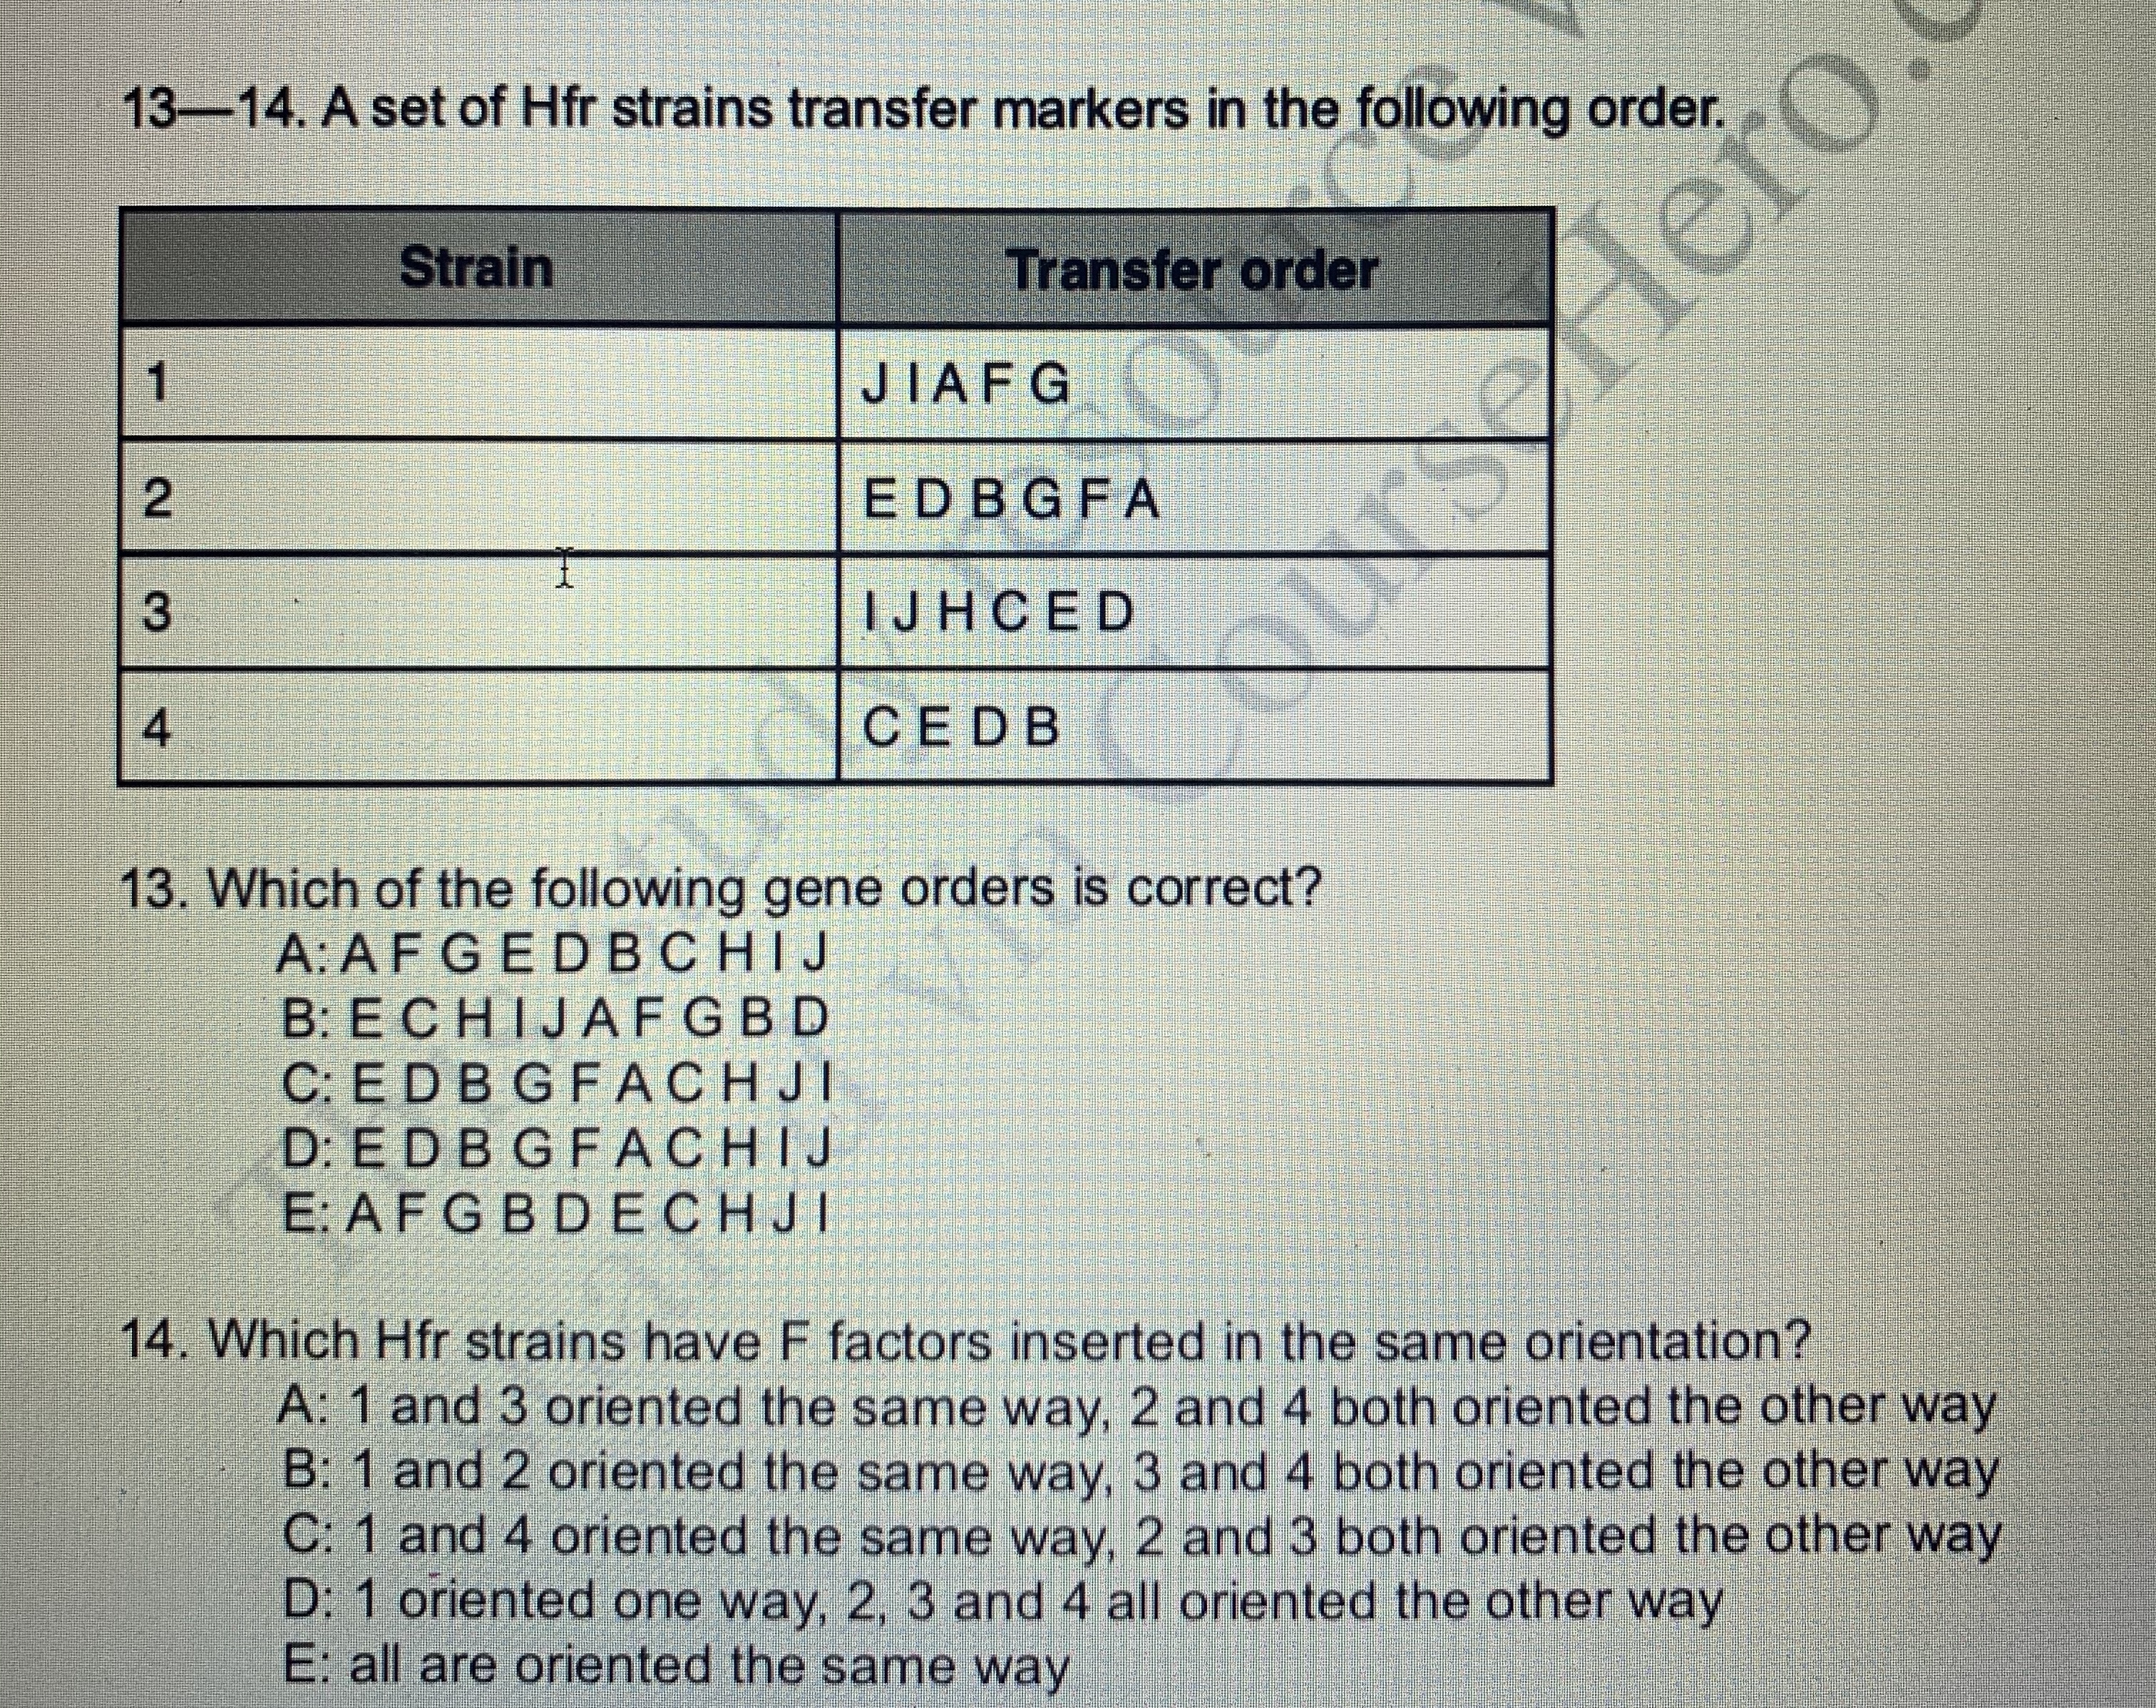 13-14. A set of Hfr strains transfer markers in the following order. Strain Transfer order JIAF G 1 ED BGFA IJH CE D CED B 13. Which of the following gene orders is correct? A: AFGEDBCHIJ B: ECHIJAFGBD C: E D B G FACH JI D: E D B G FACHIJ E: A F G BD ECHJI 14. Which Hfr strains have F factors inserted in the same orientation? A: 1 and 3 oriented the same way, 2 and 4 both oriented the other way B: 1 and 2 oriented the same way, 3 and 4 both oriented the other way C: 1 and 4 oriented the same way, 2 and 3 both oriented the other way D: 1 oriented one way, 2, 3 and 4 all oriented the other way E: all are oriented the same way 2 UYSerlero